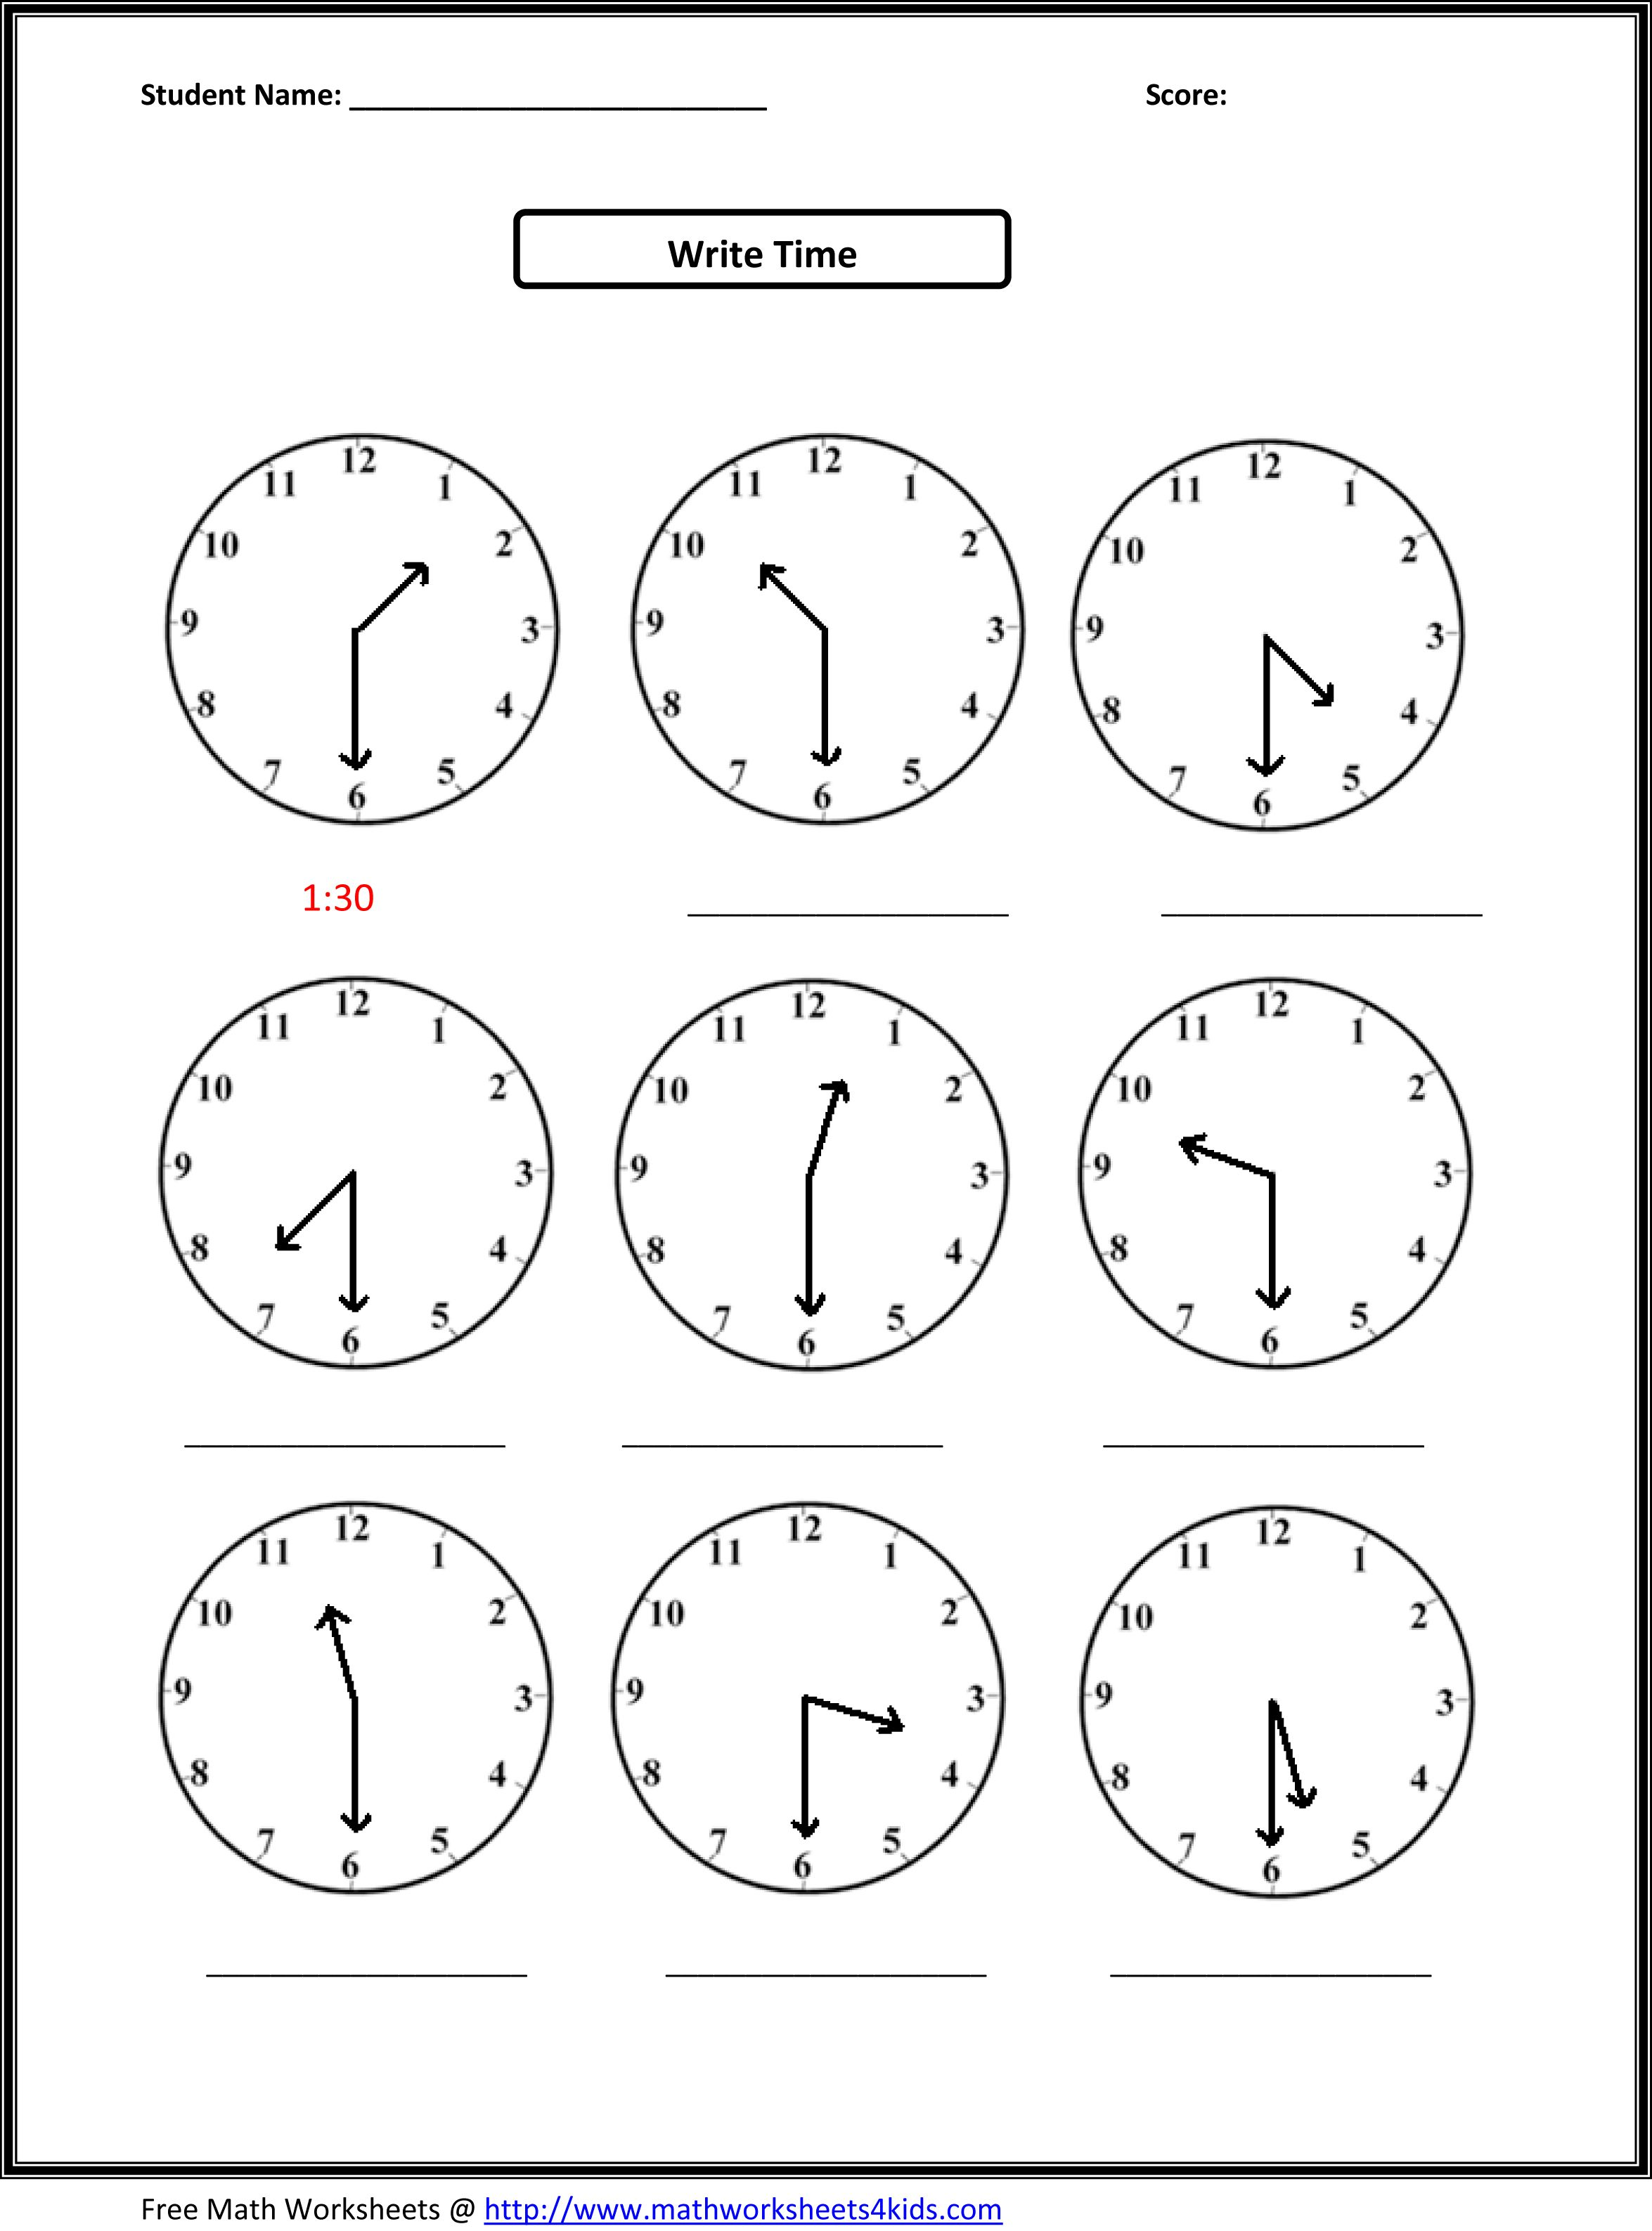 Proatmealus  Picturesque Worksheet On Time For Grade   Reocurent With Engaging Free Printable Telling Time Worksheets Nd Grade  Reocurent With Comely Mapping Skills Worksheet Also Worksheets For Multiplication In Addition Grade  Reading Comprehension Worksheets And First Grade Math Worksheets Word Problems As Well As Writing A Topic Sentence Worksheet Additionally Factors That Affect Climate Worksheet From Reocurentcom With Proatmealus  Engaging Worksheet On Time For Grade   Reocurent With Comely Free Printable Telling Time Worksheets Nd Grade  Reocurent And Picturesque Mapping Skills Worksheet Also Worksheets For Multiplication In Addition Grade  Reading Comprehension Worksheets From Reocurentcom